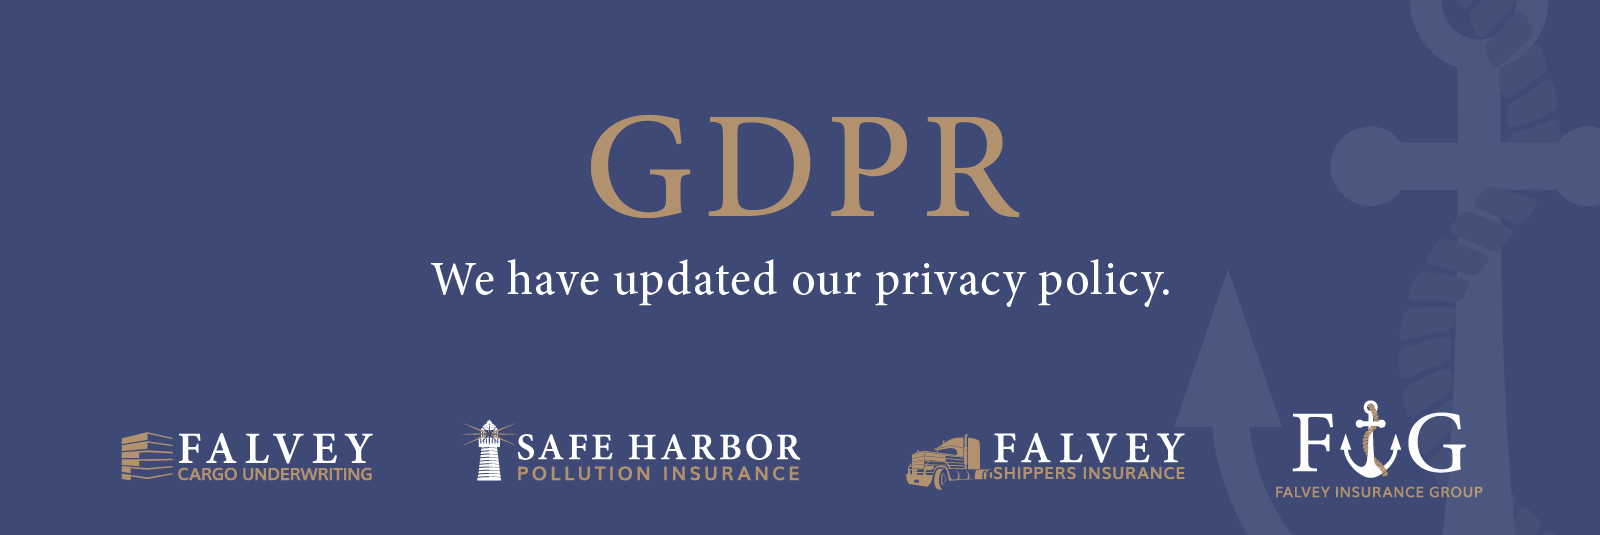 FIG_Post_GDPR_Website-1